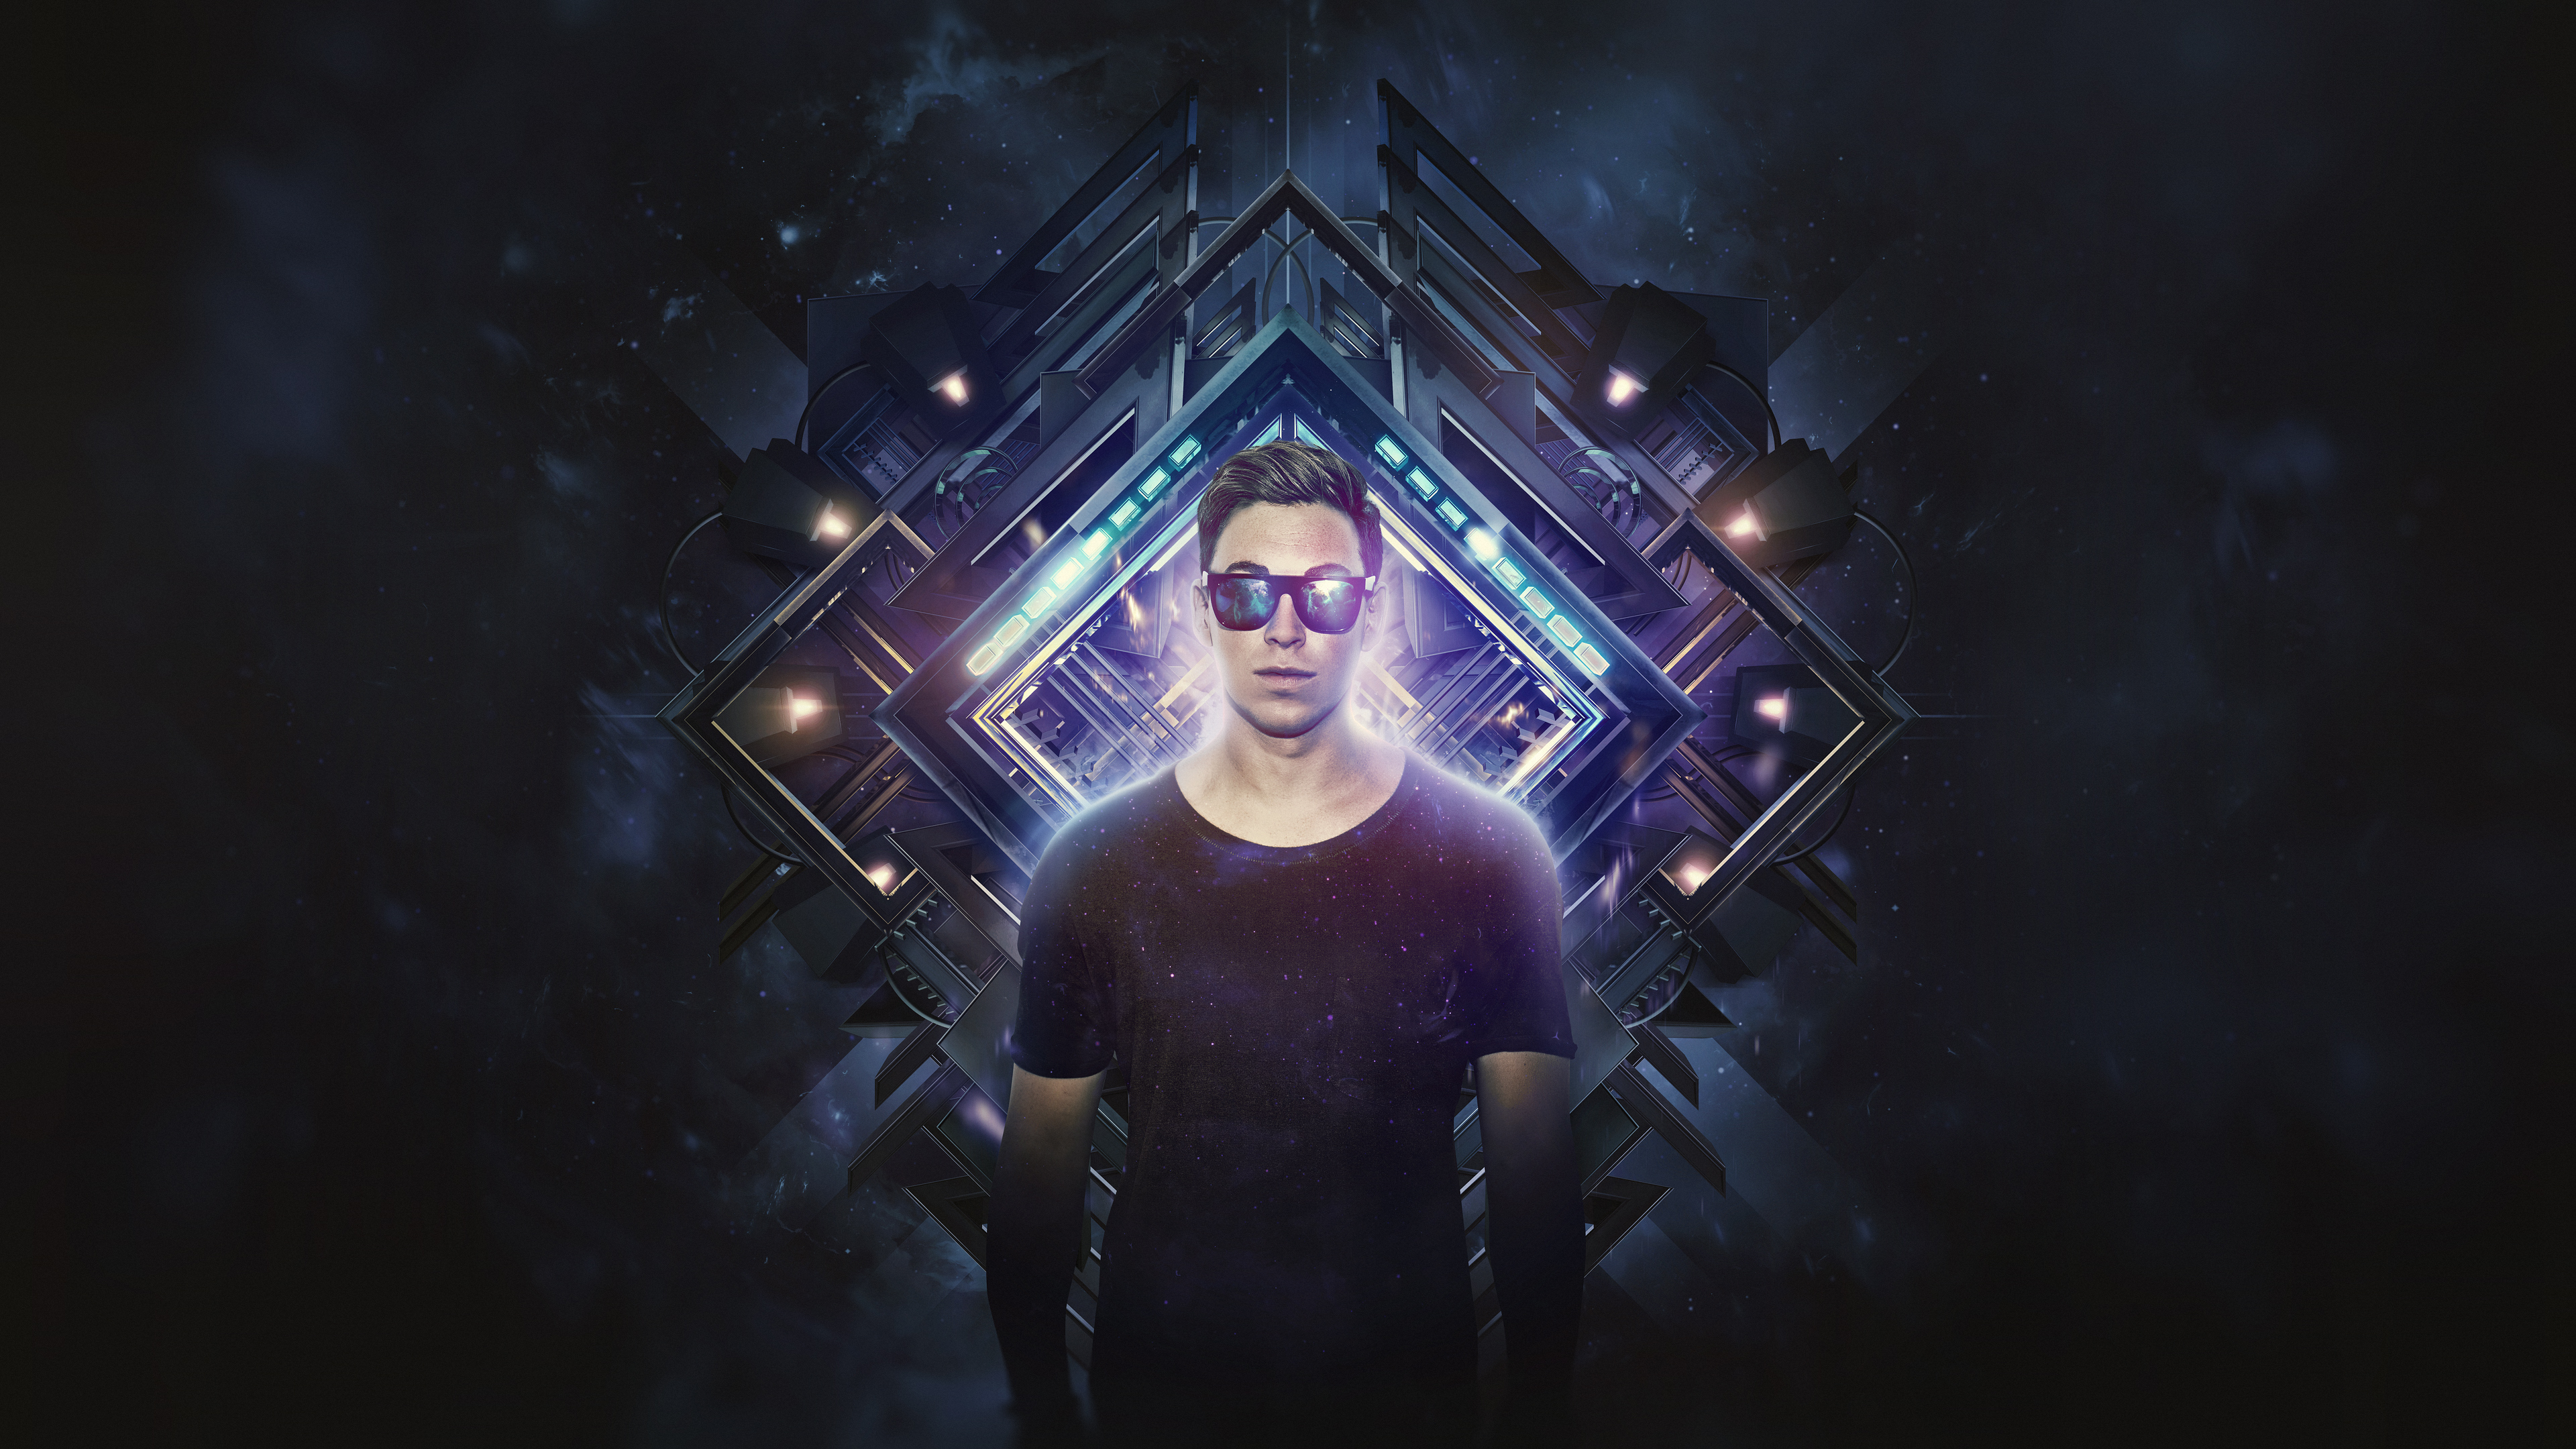 Hardwell Presents Revealed Volume 7 (Official Wallpaper) 4k Ultra HD Wallpaper and Background ...